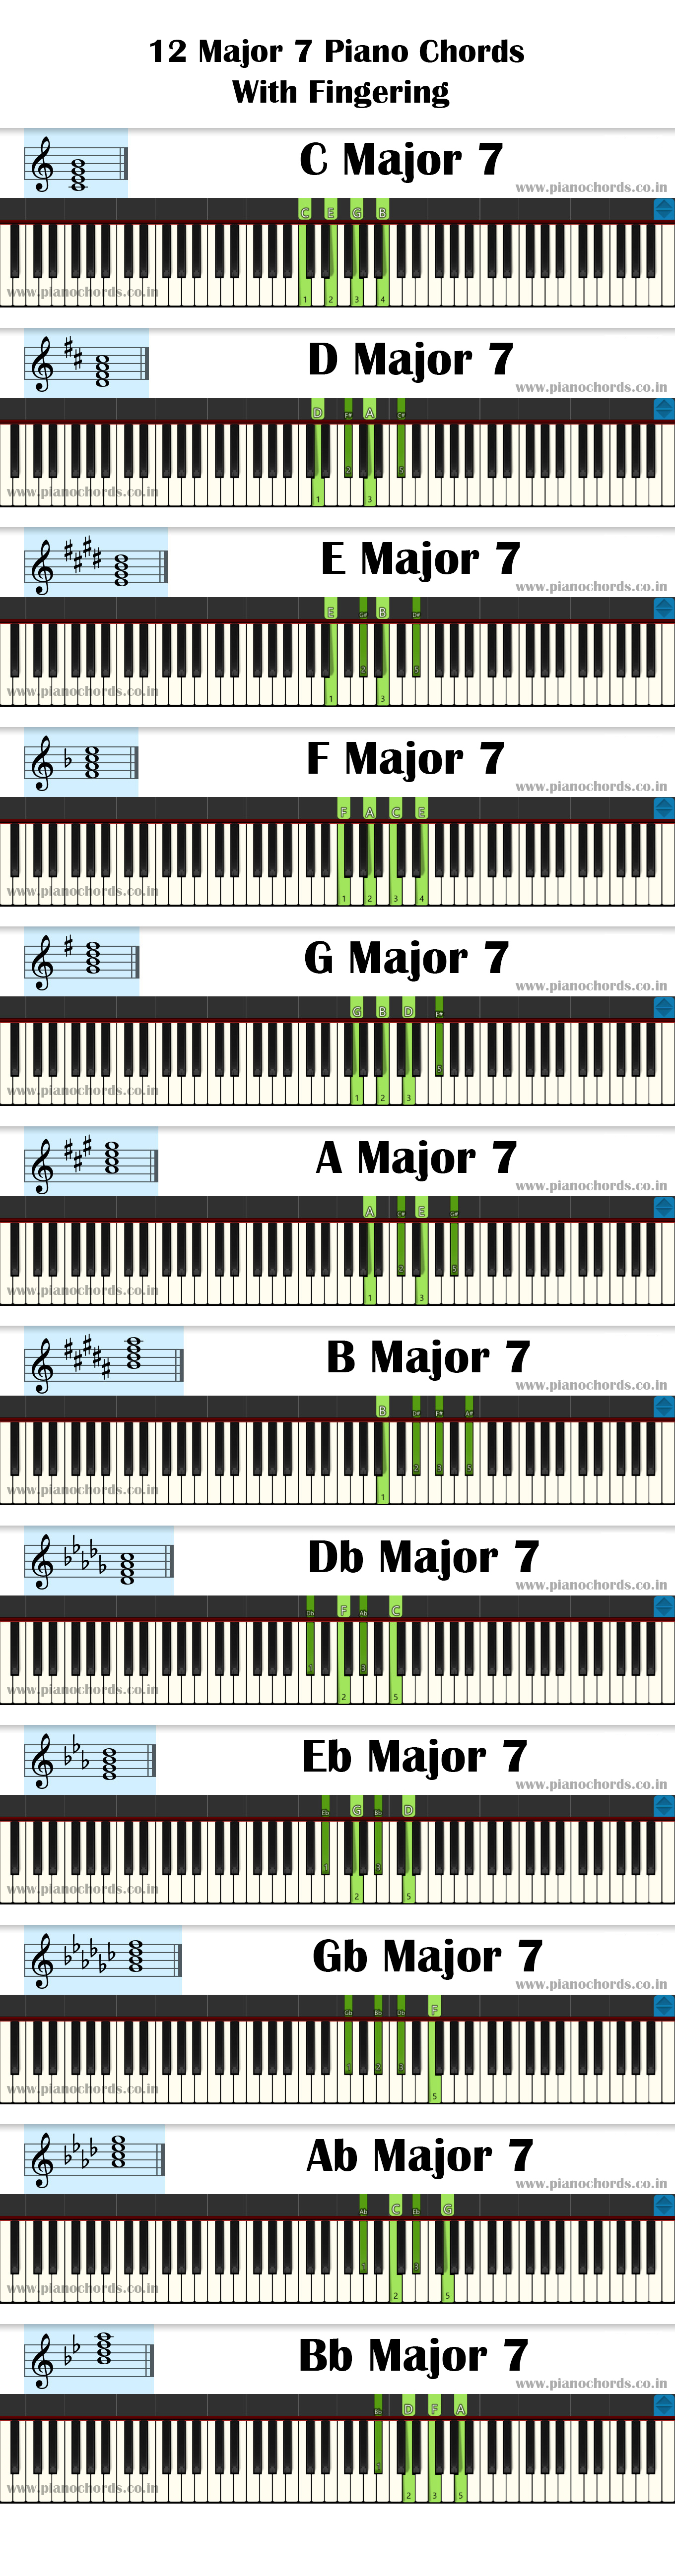 12 Major 7 Piano Chords With Fingering, Diagram, Staff Notation